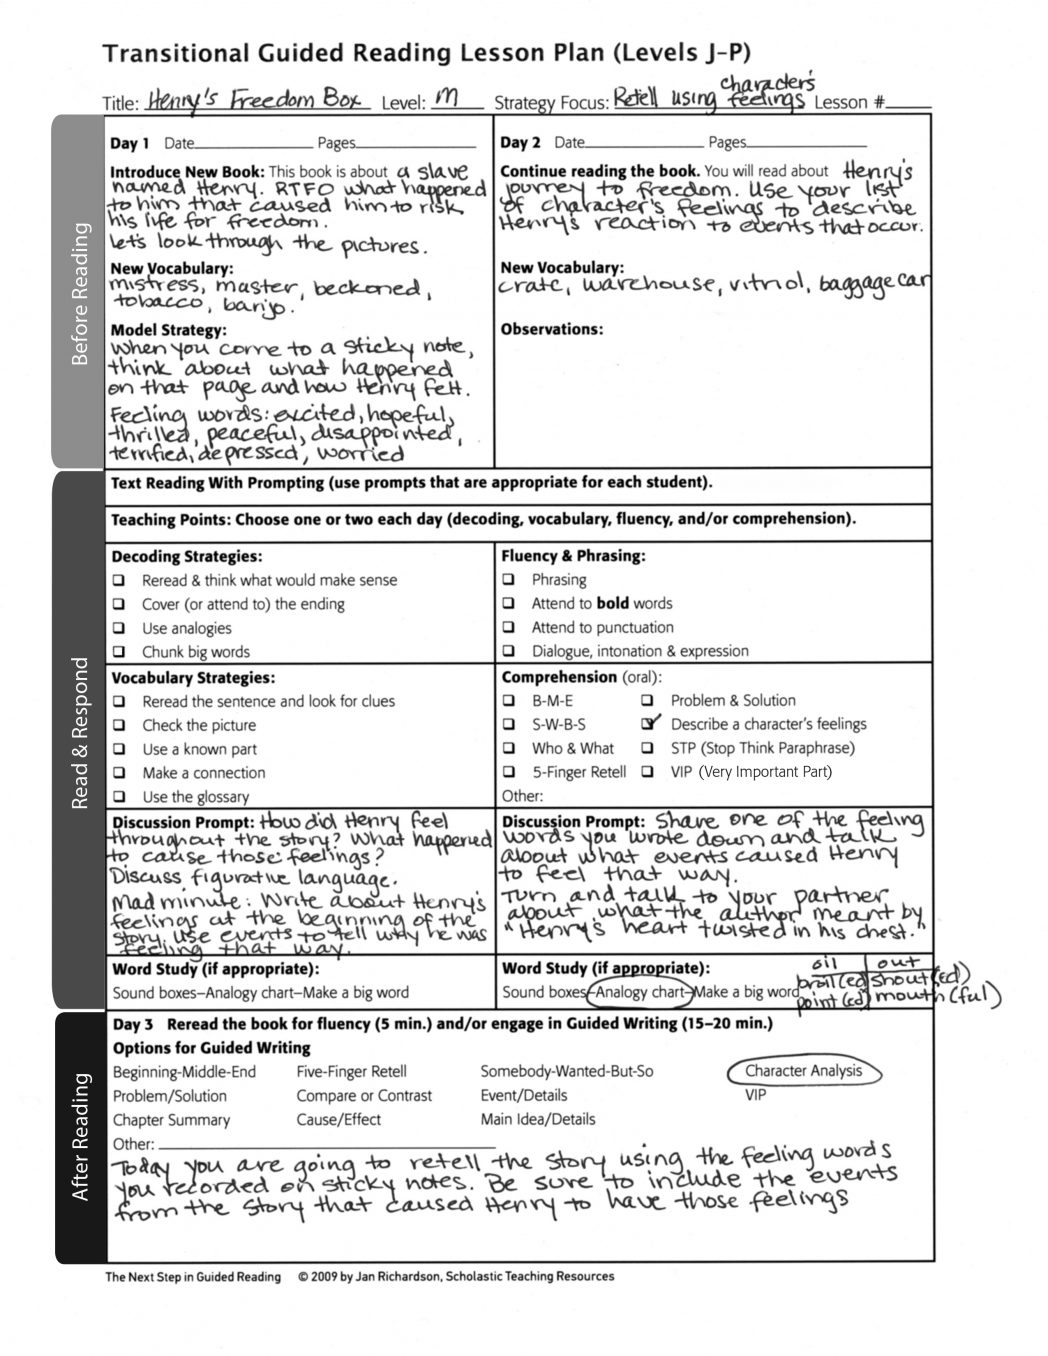 012 Define Happiness Essay Clever Titles How To Write Good Definition Outline Fi4 Handout Guided Reading Videos Transitional Lesson Plan M Comp 1048x1356 Imposing And Factors Influence Argument Full